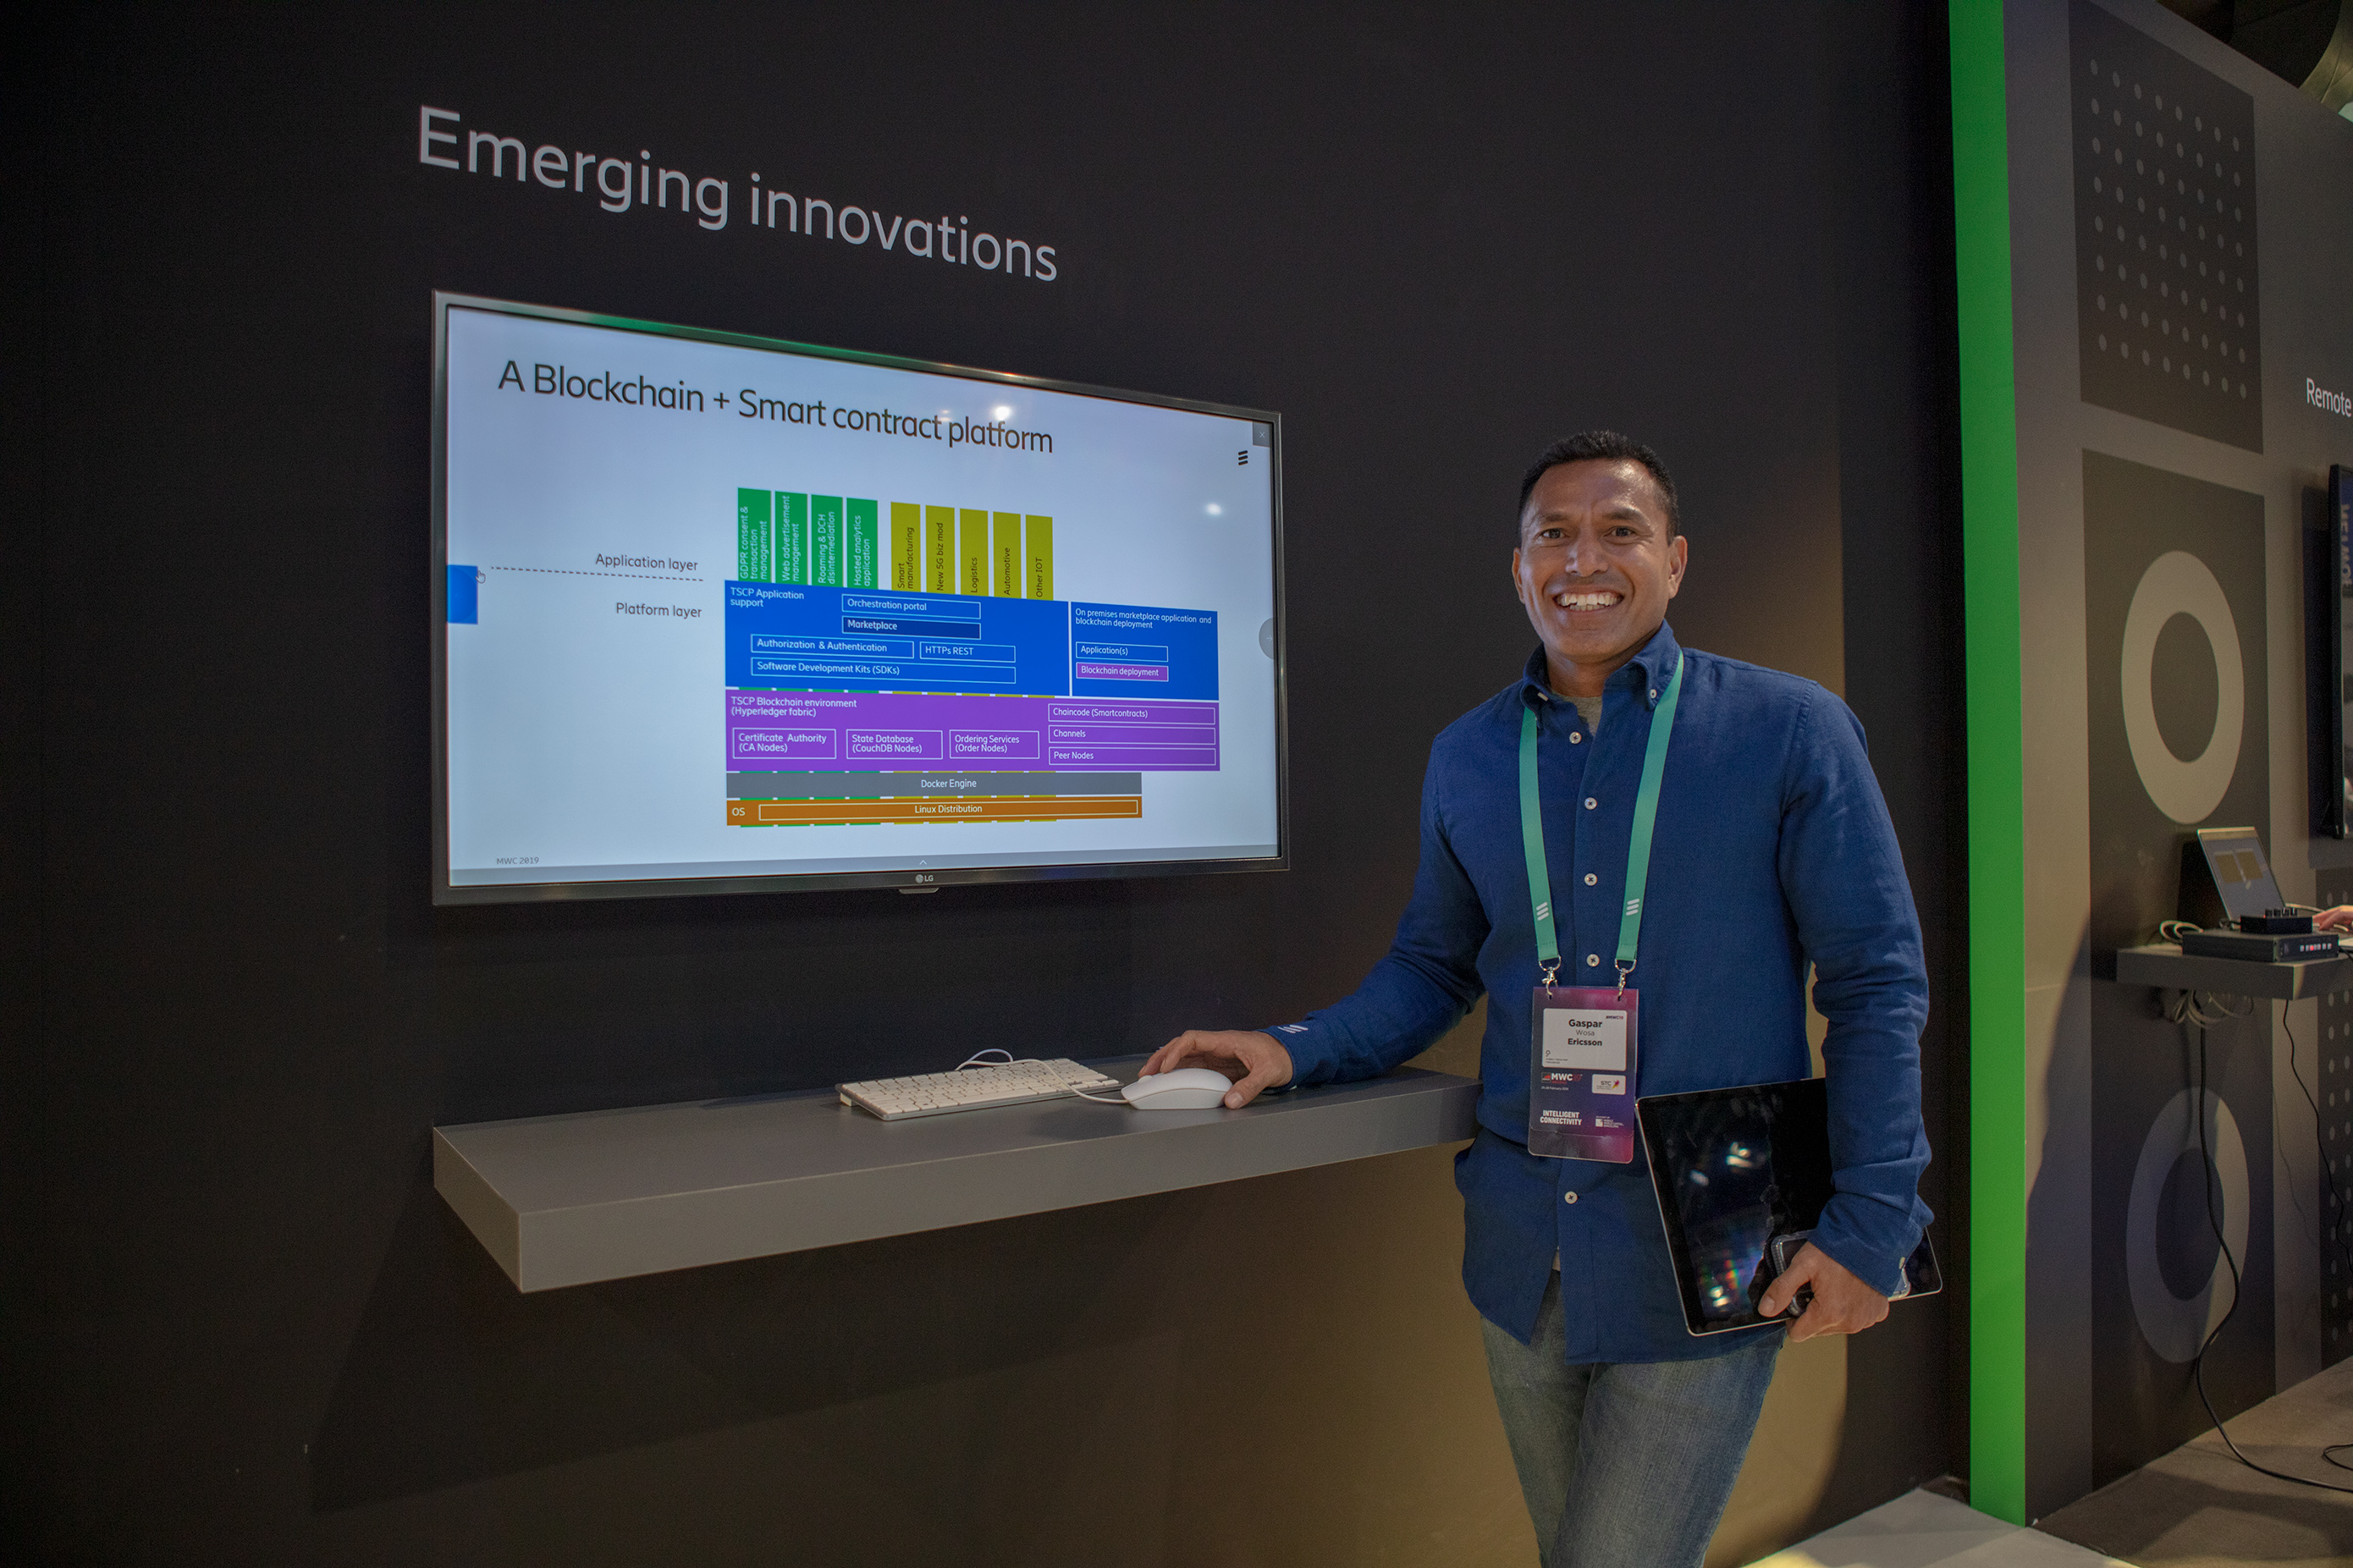 Smart contract platform for service providers presented at MWC 2019 (credits: Ericsson / Flickr Creative Commons Attribution-NonCommercial-NoDerivs 2.0 Generic (CC BY-NC-ND 2.0))